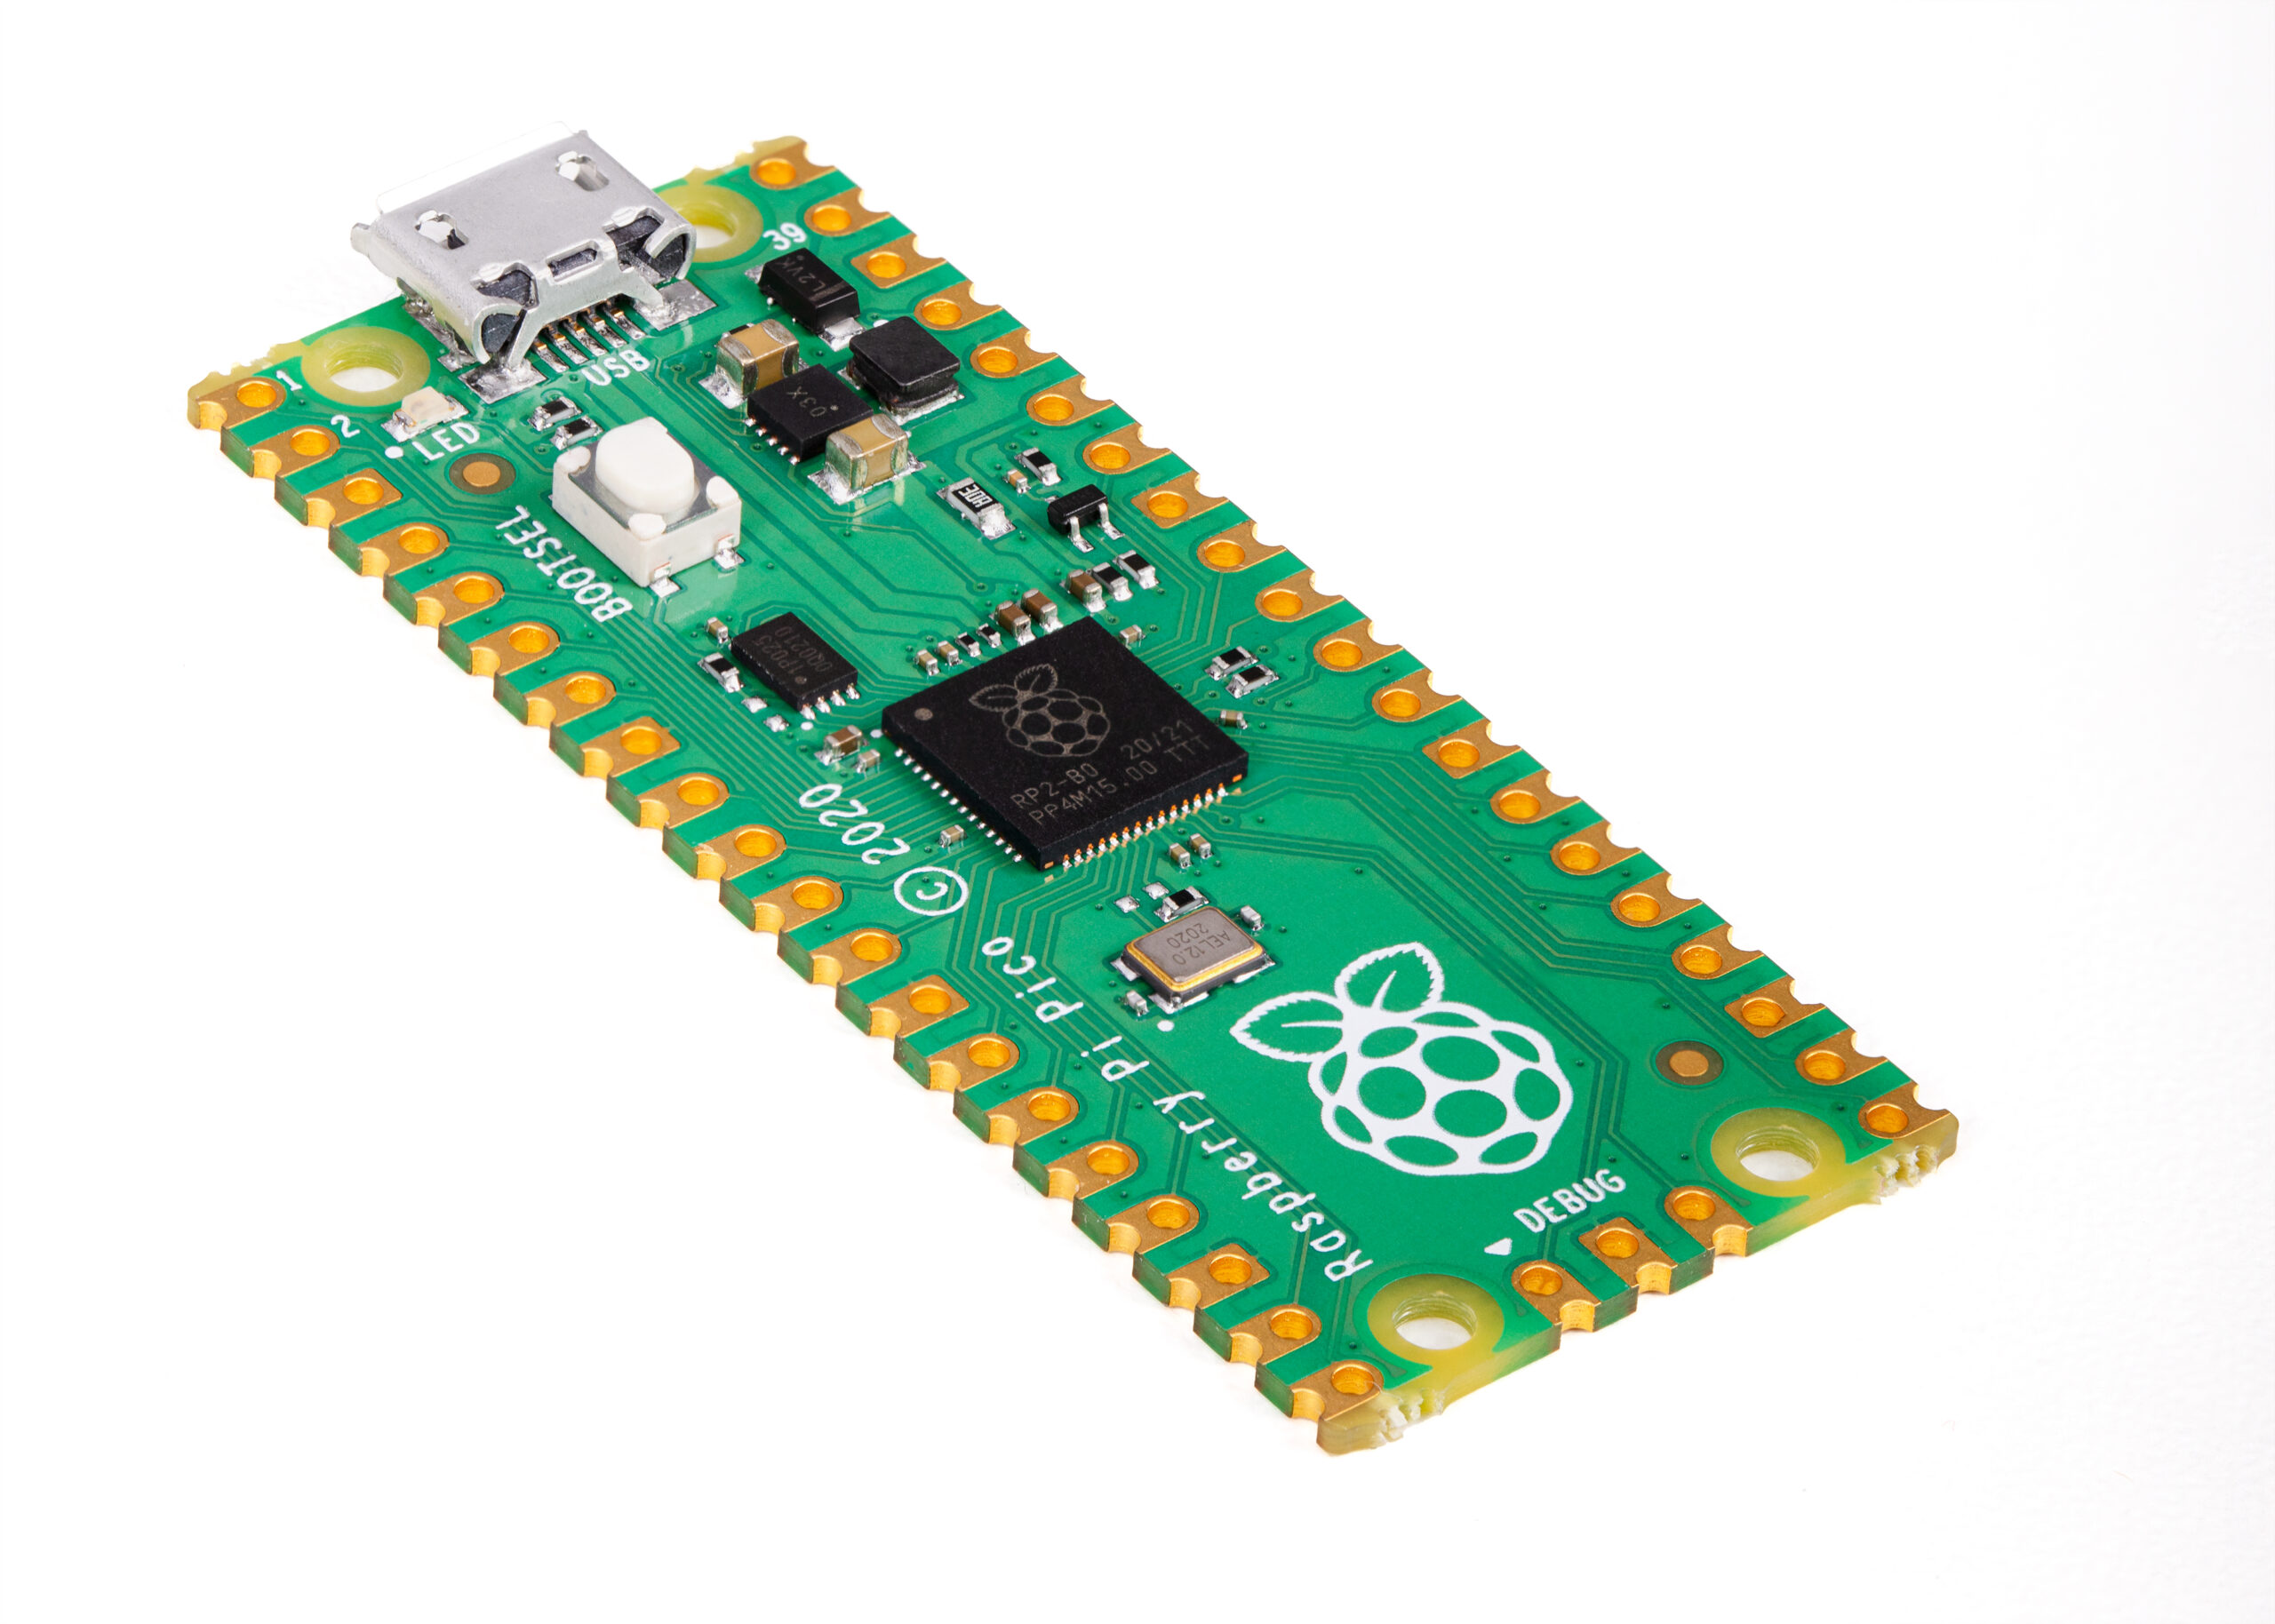 Raspberry Pi moves into the microcontroller market with RP2040 MCU